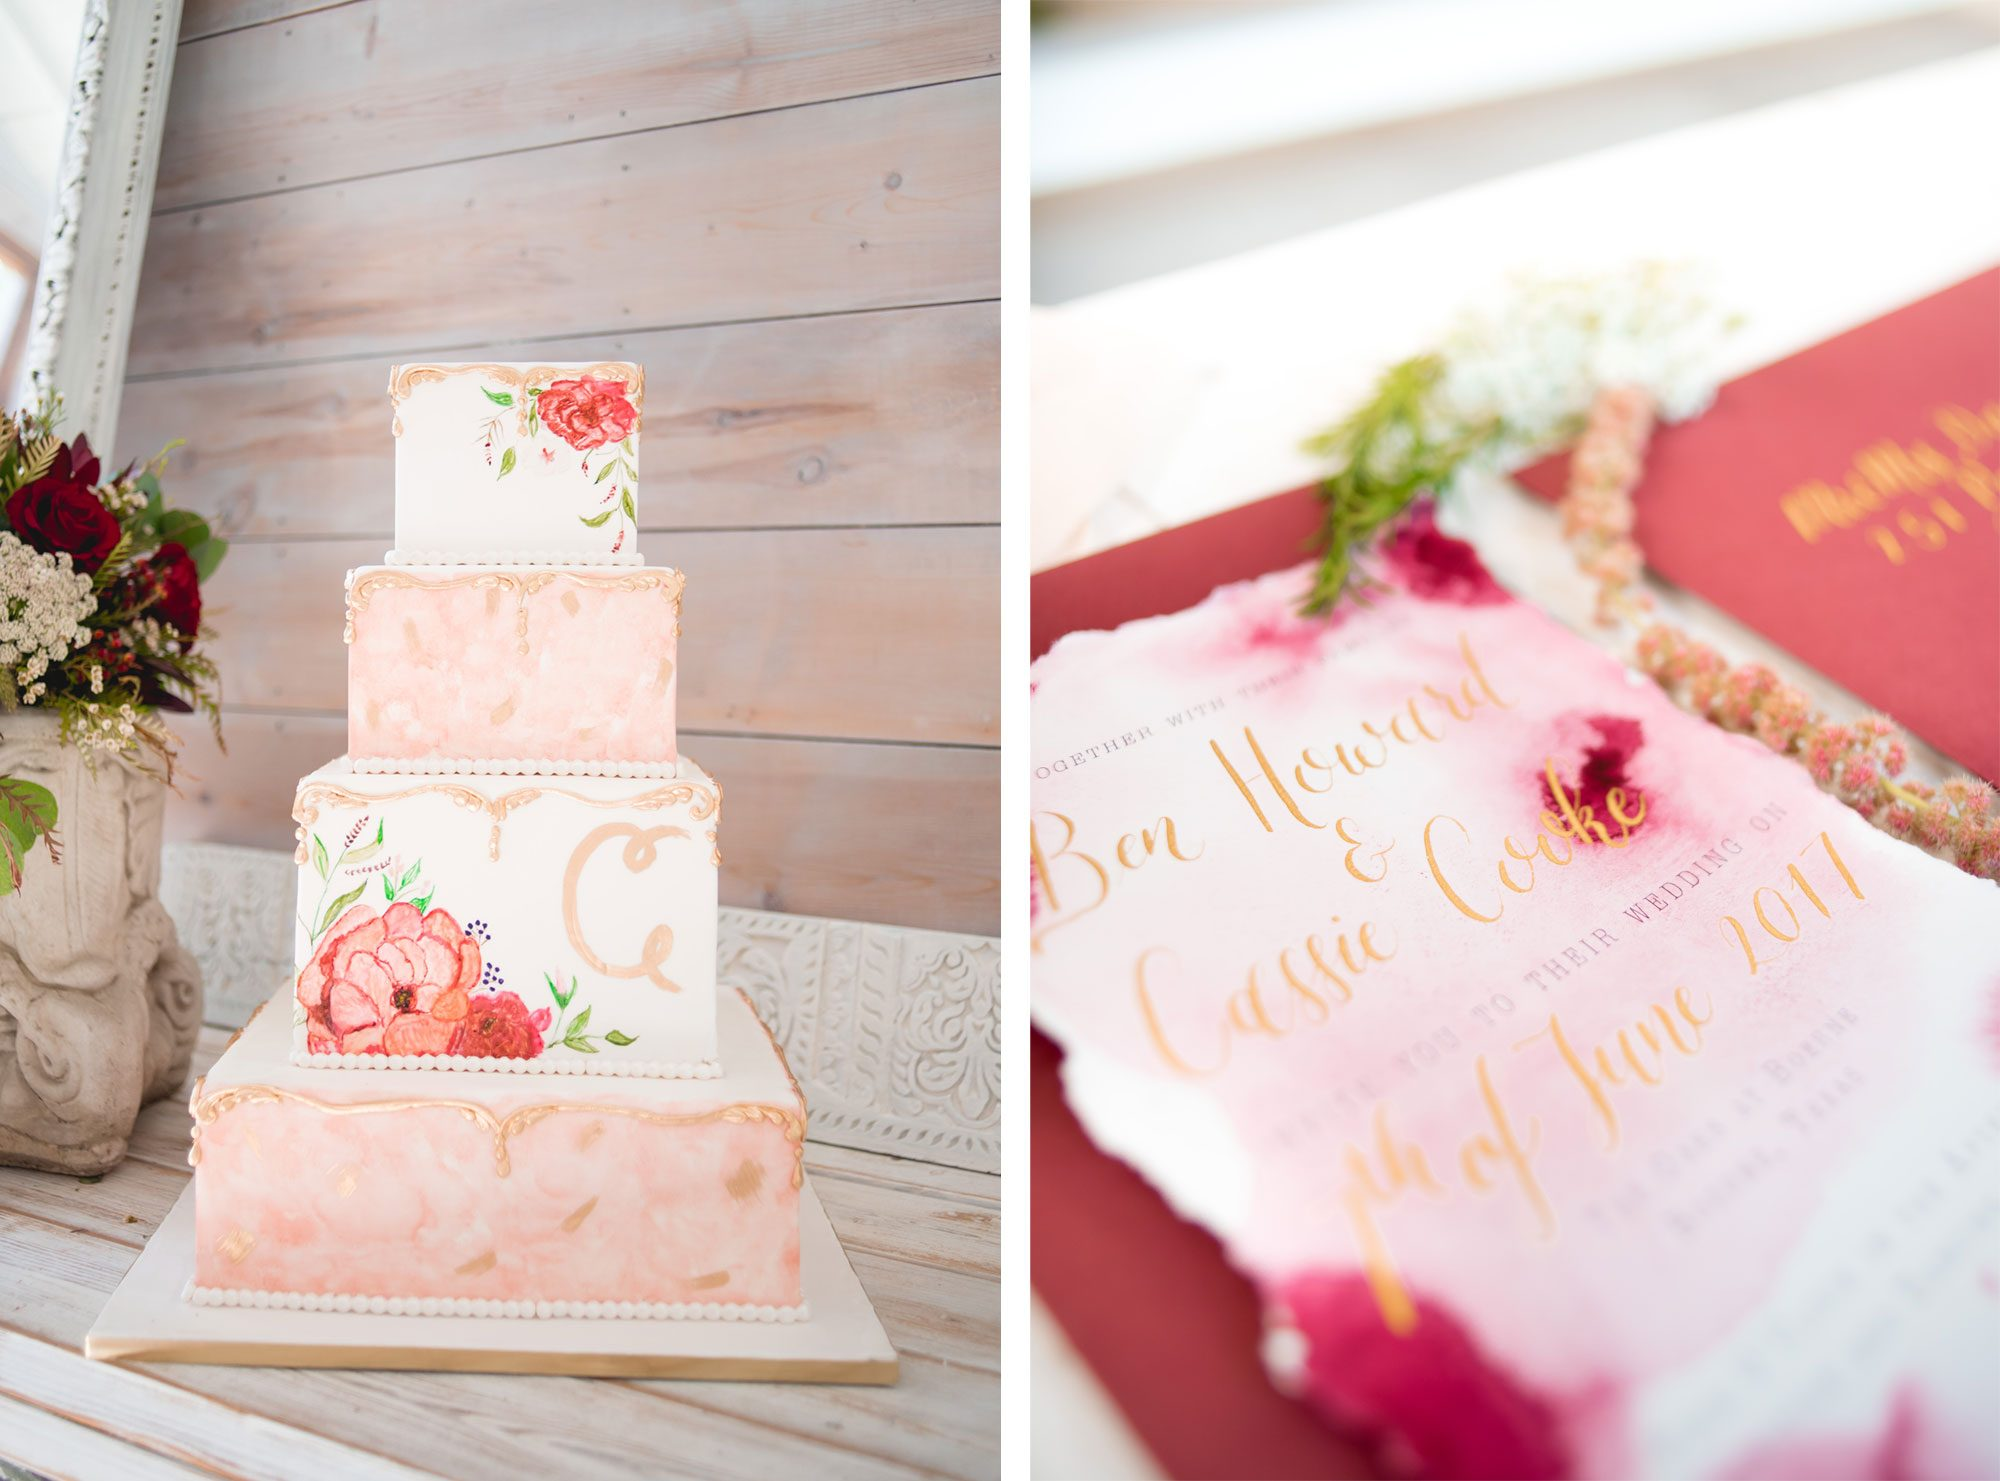 Floral cake and watercolor invitations